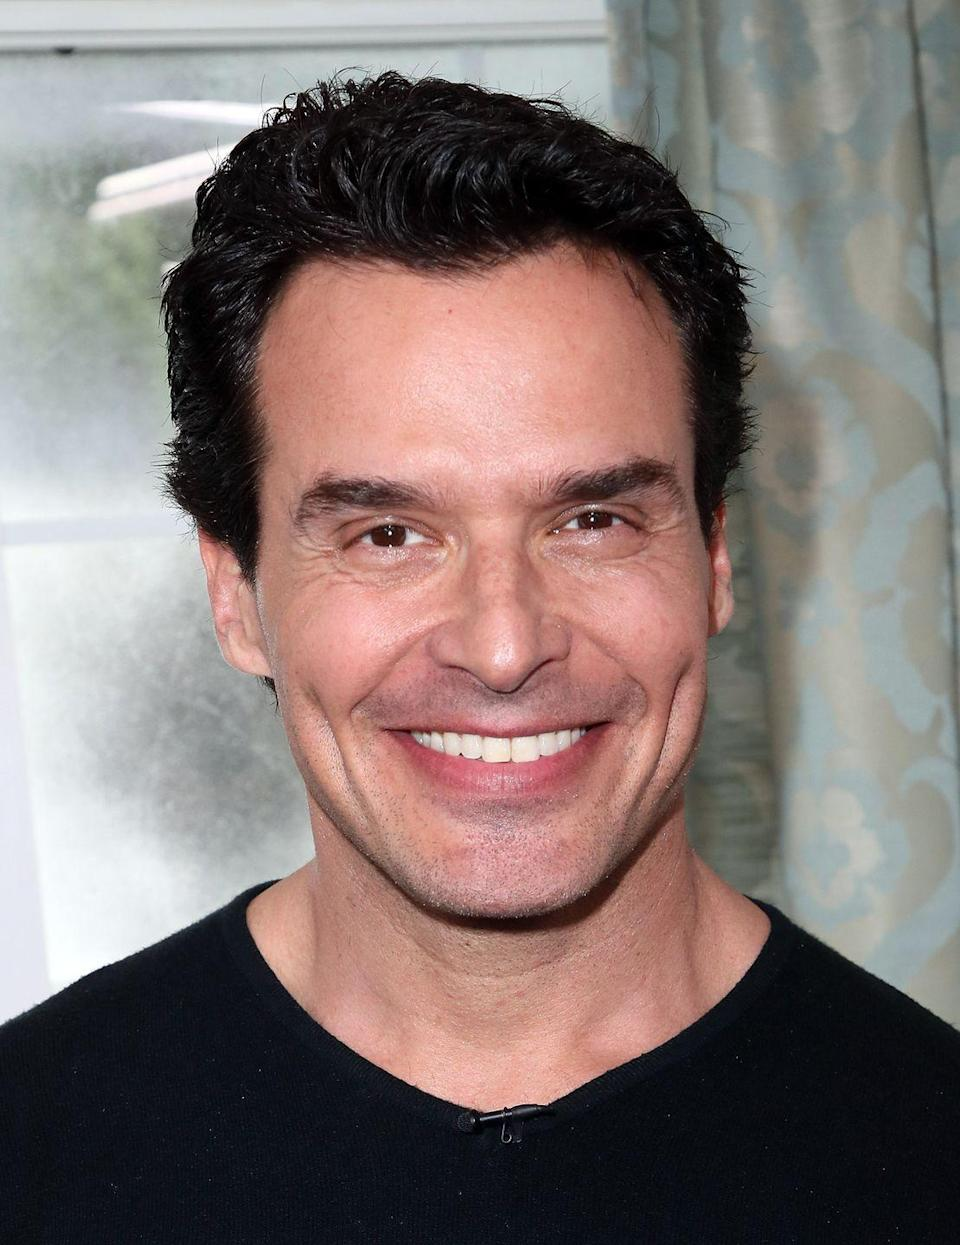 <p>In 2018, outspoken Republican and former soap opera actor, Antonio Sabato Jr., challenged Democratic incumbent Julia Brownley for the spot of representative of California's 26th district in Congress. Brownley ended up beating Sabato after claiming 59% of votes to Sabato's 41%.</p>